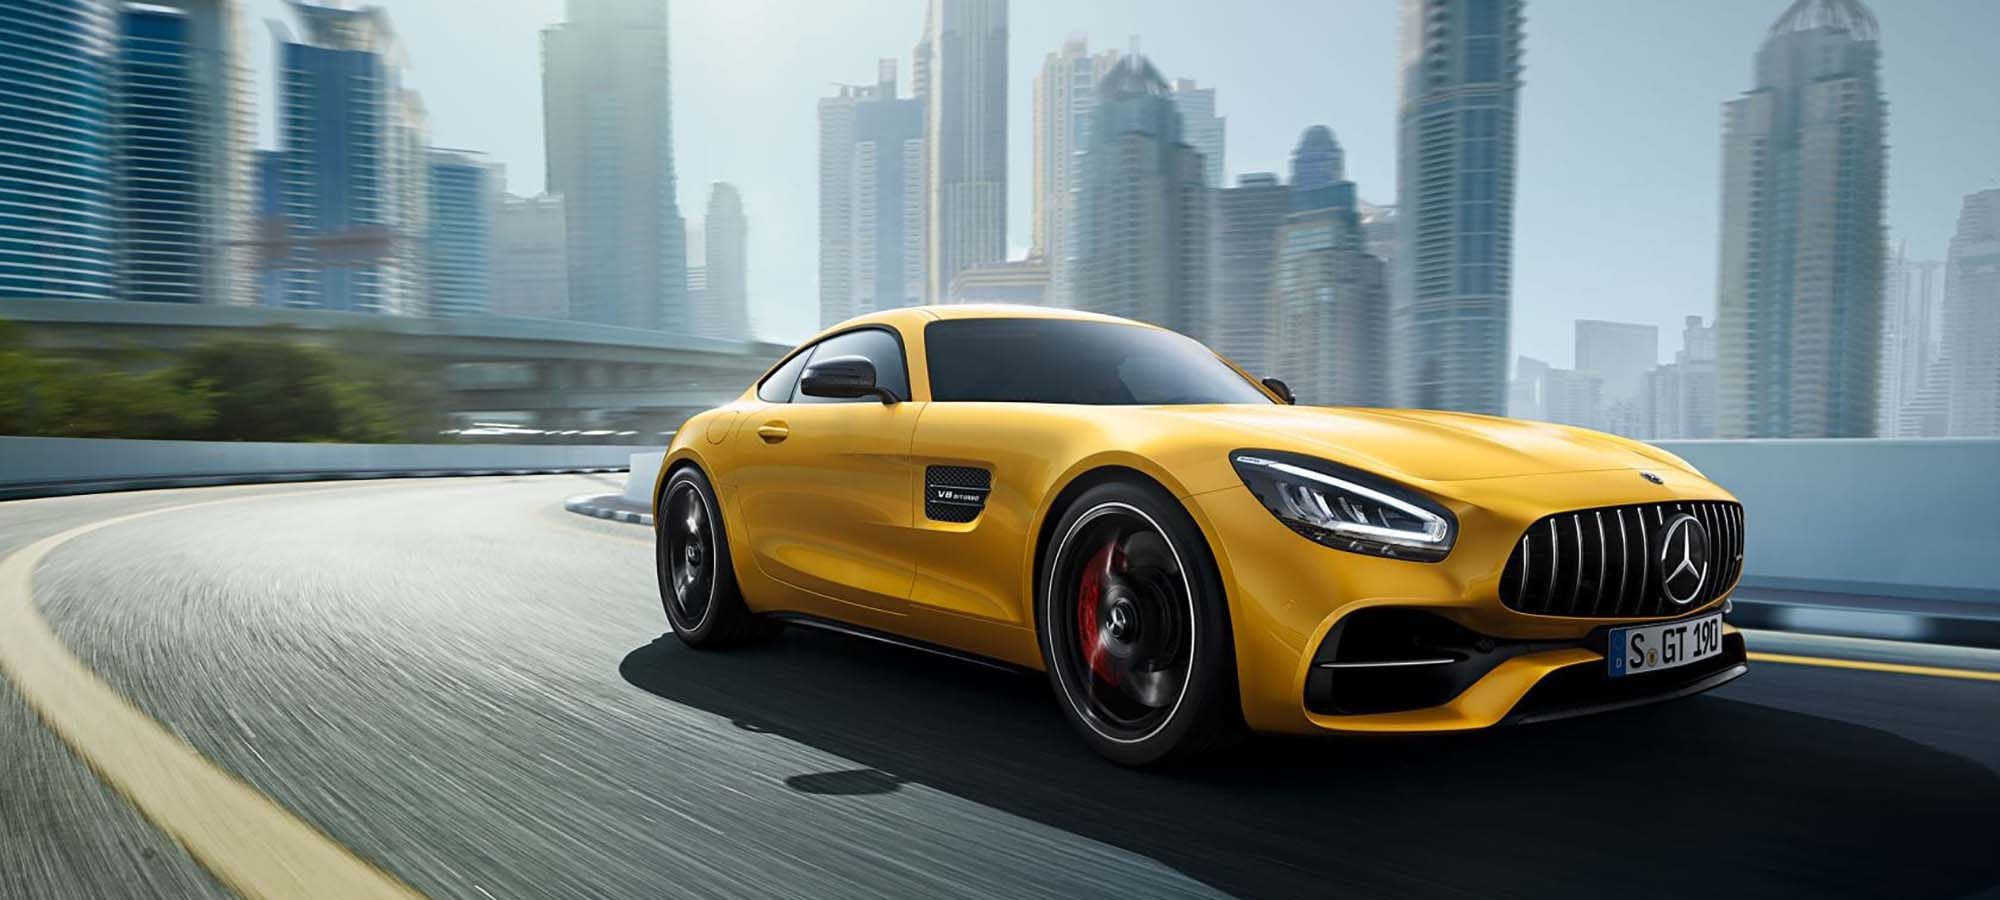 Mercedes-Benz AMG GT-klass